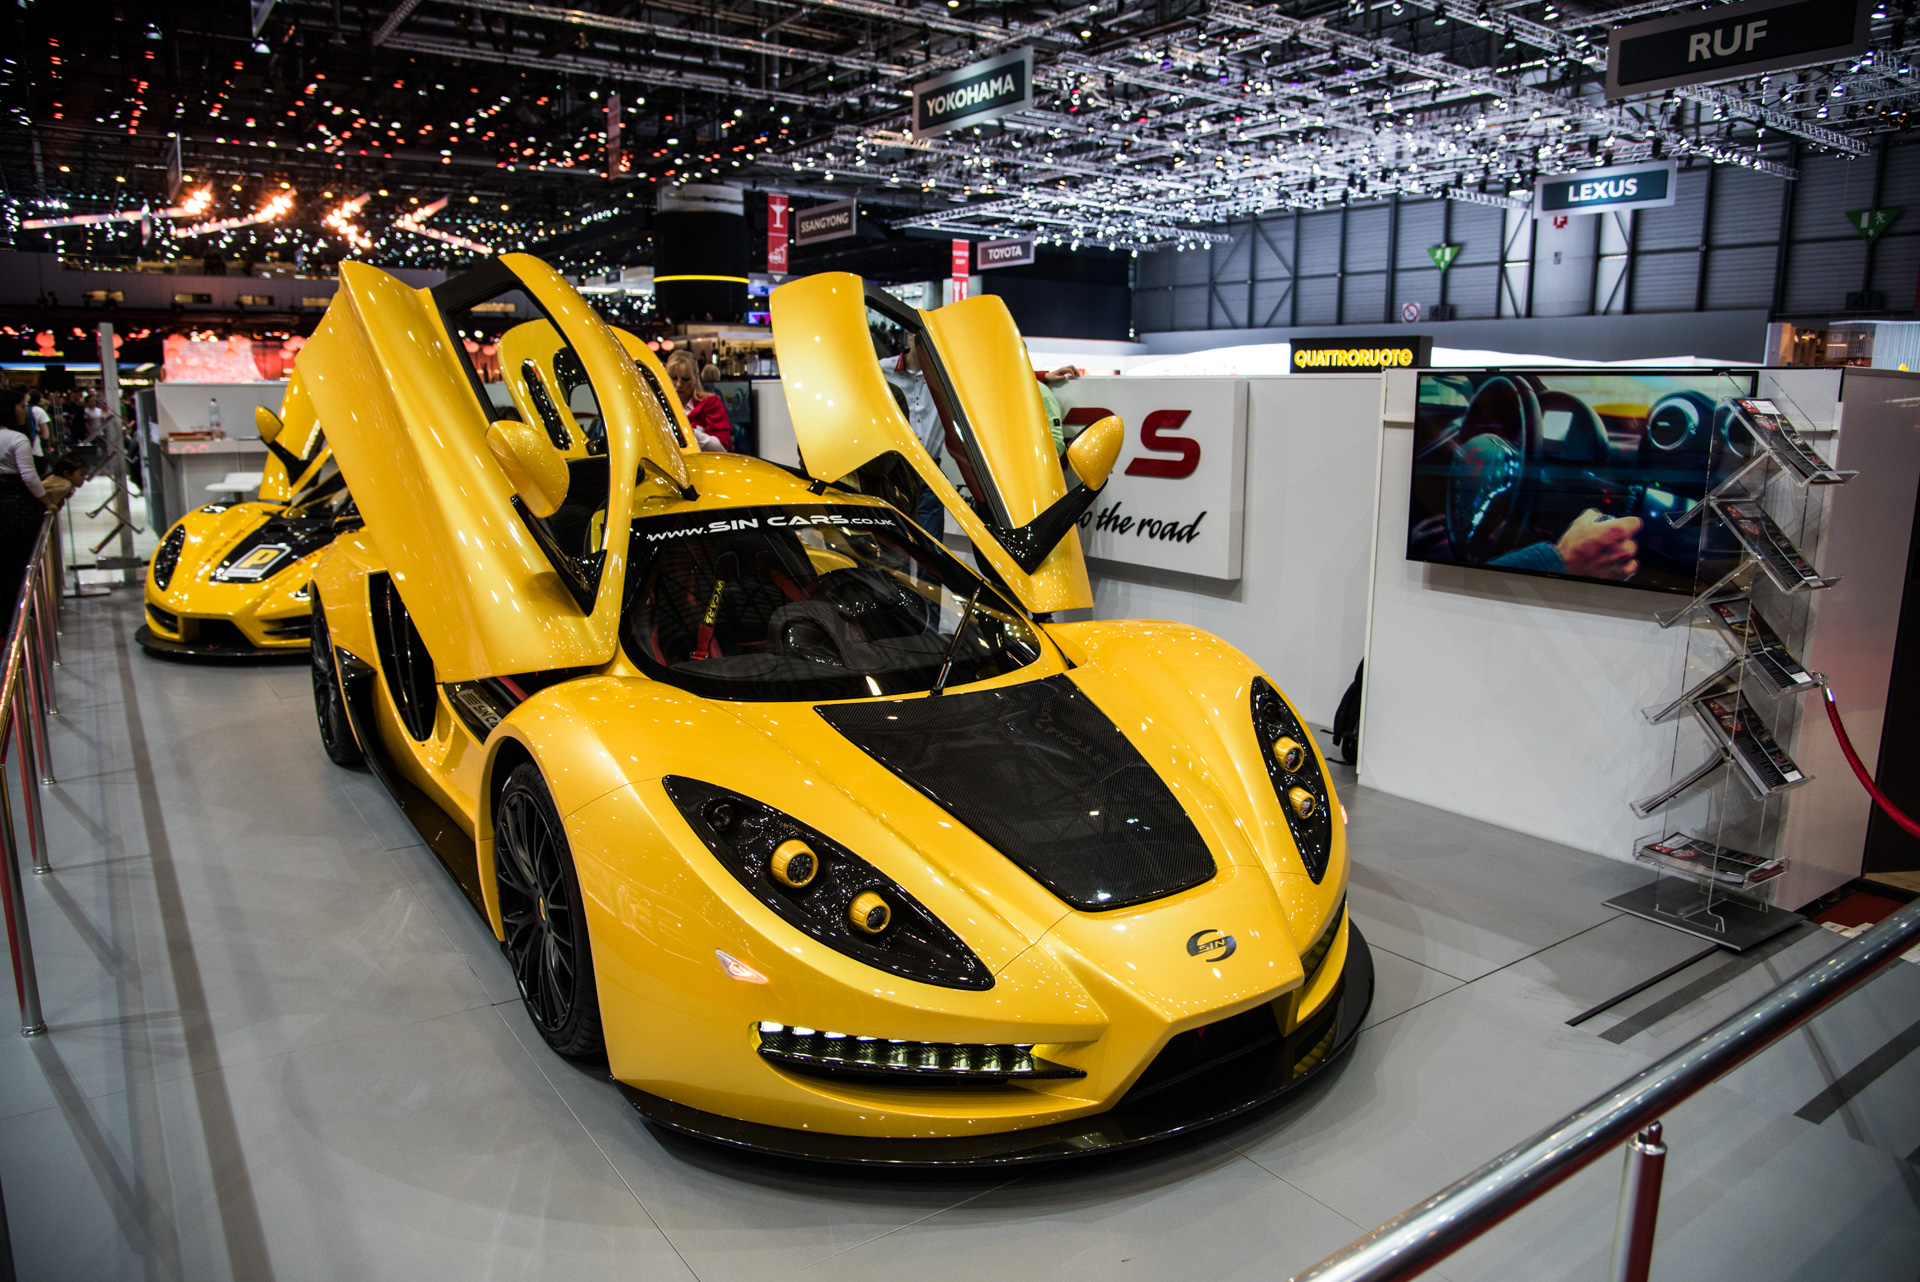 geneva-international-motor-show-igor-sinitsin-68